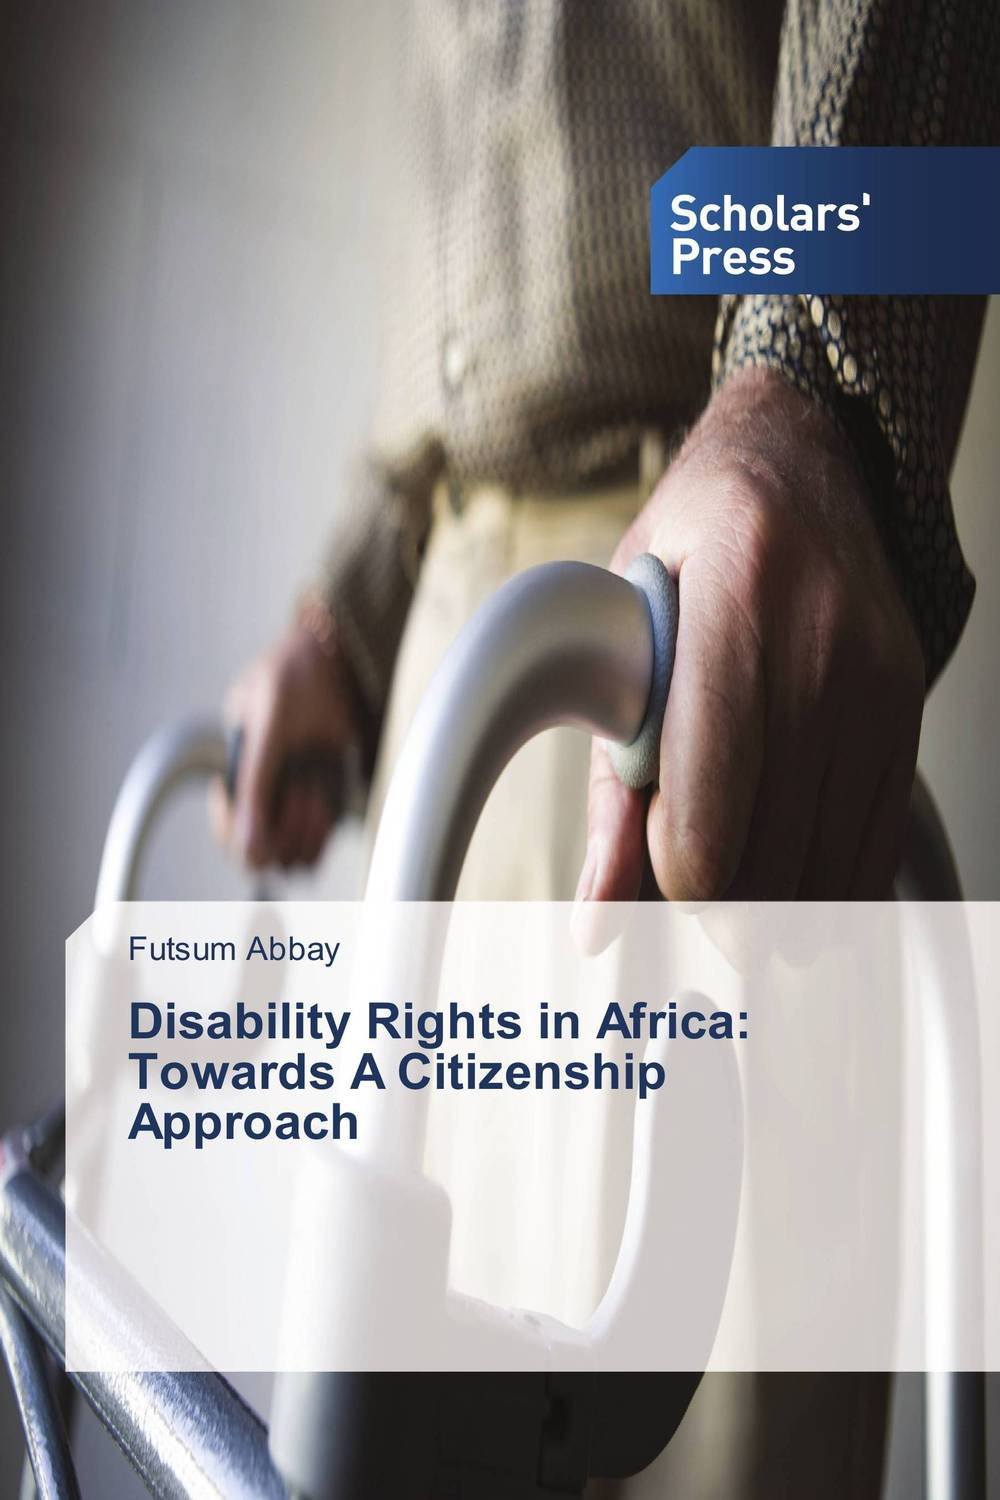 Disability Rights in Africa: Towards A Citizenship Approach